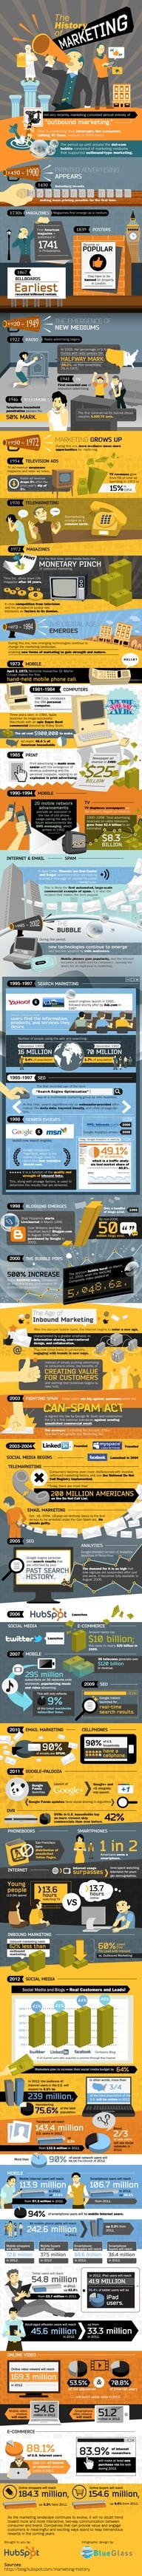 The History of Marketing